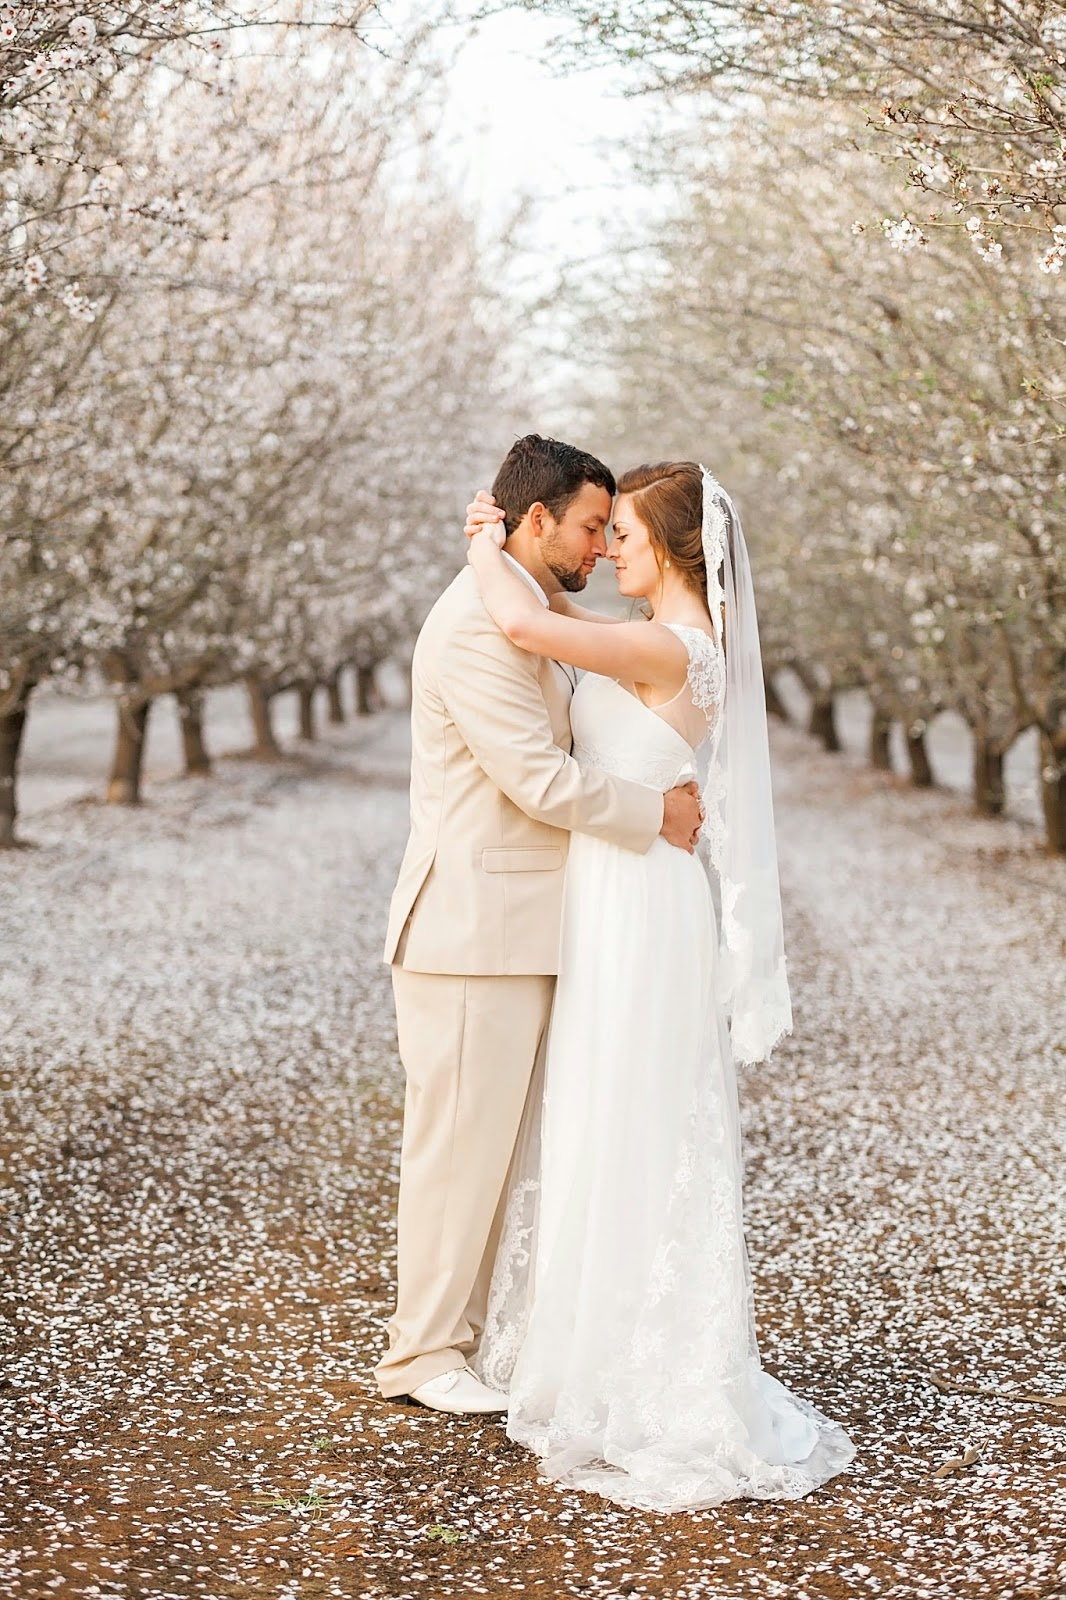 vista ranch and cellars, vista merced, vista ranch merced, , garden wedding, spring outdoor wedding, diy spring wedding, almond blossom wedding, etsy wedding dress, vintage wedding dress, ethereal wedding dress, simple wedding dress, antique wedding dress, tan wedding suits, tan and coral wedding